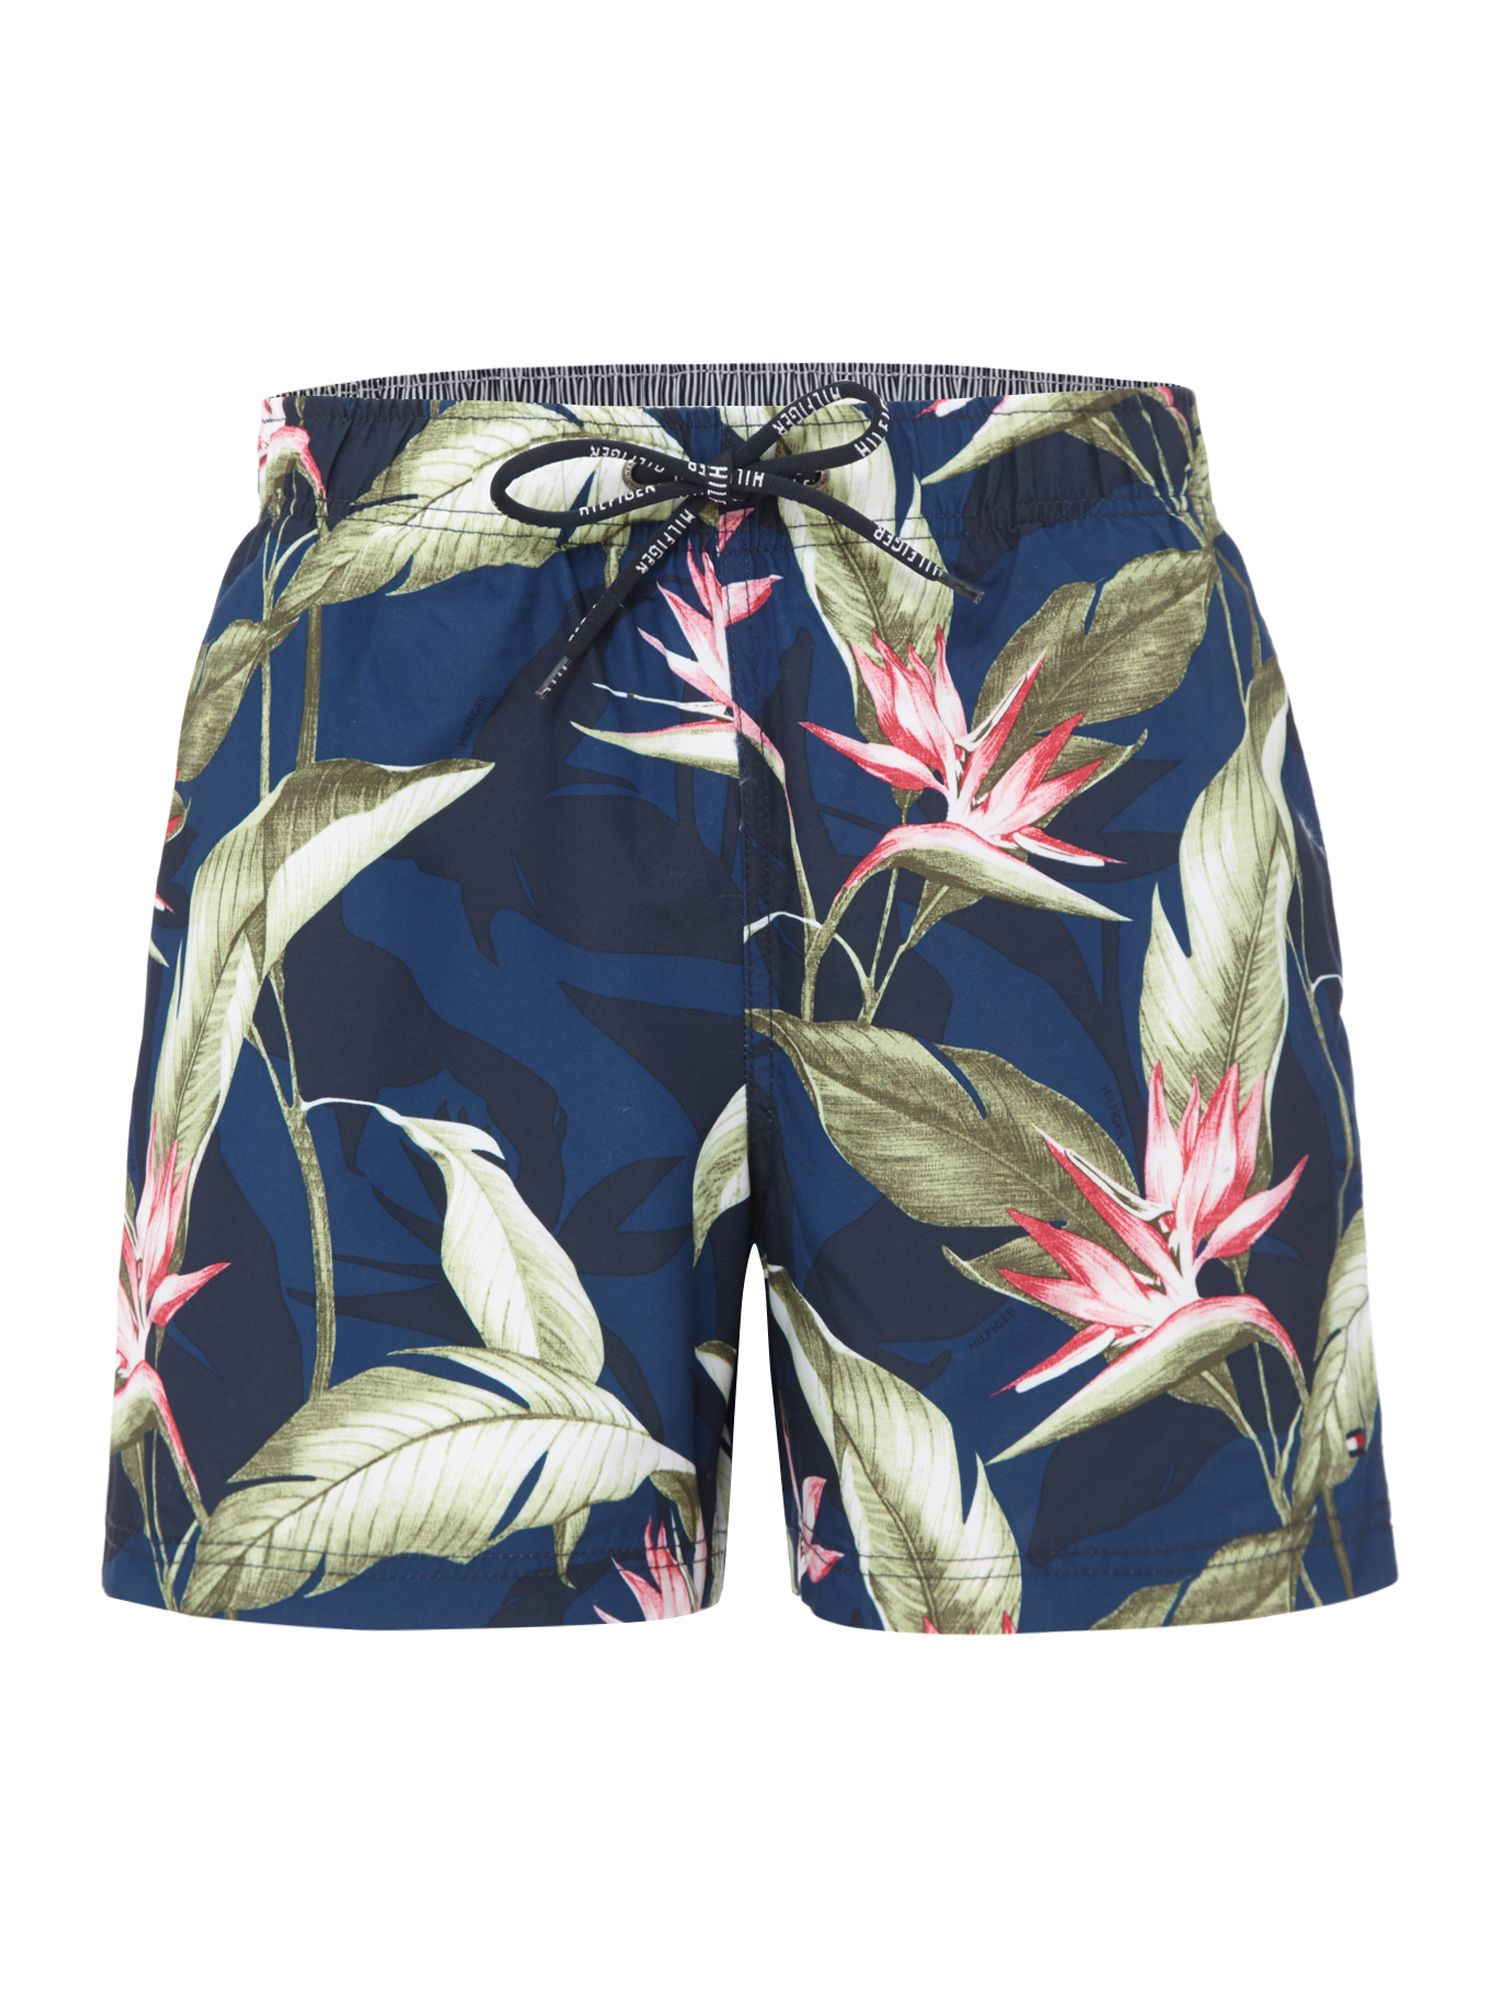 Men's Tommy Hilfiger Paradise Flower Print Swim Shorts, Blue